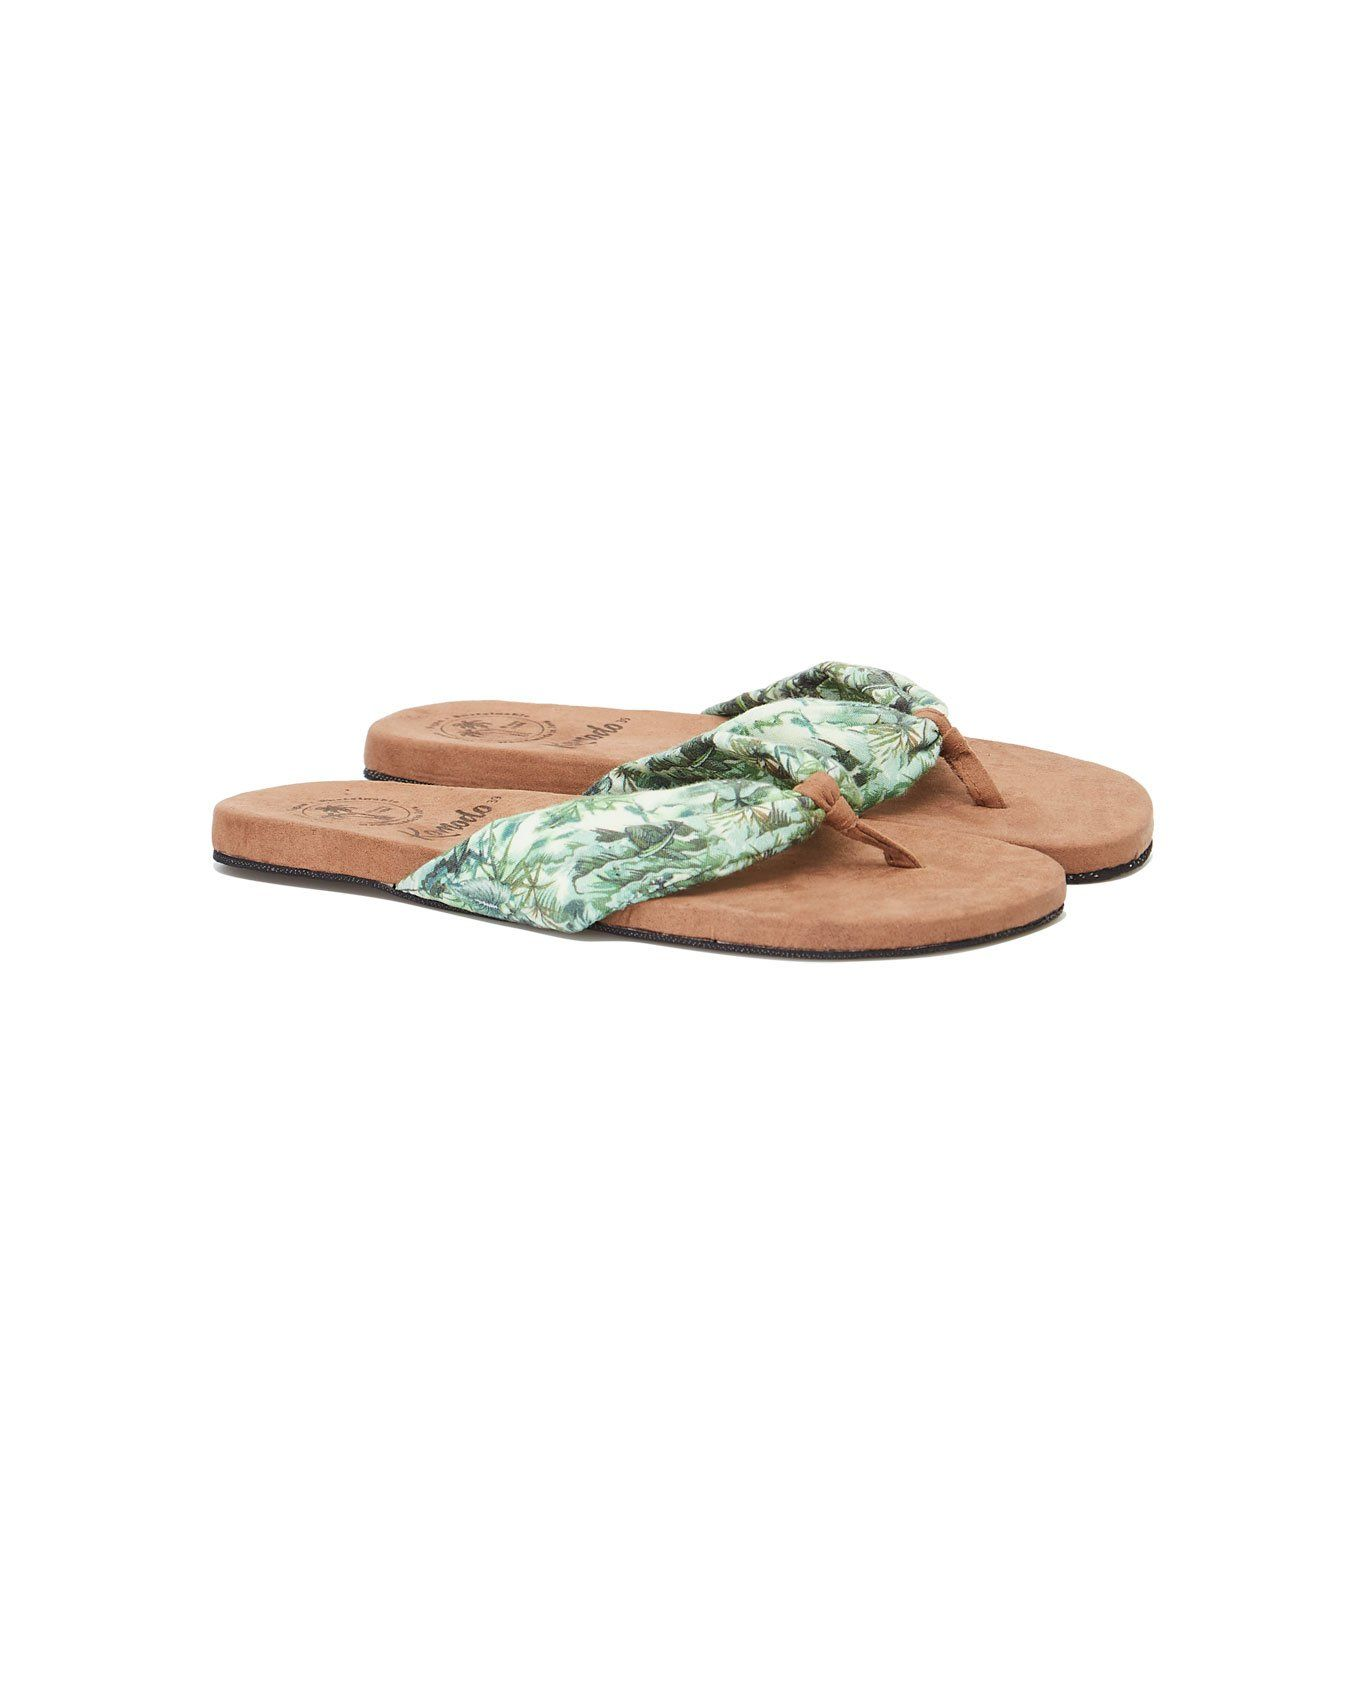 Shoes - CUPID THONG Womens Shoe Bali Tropic Green